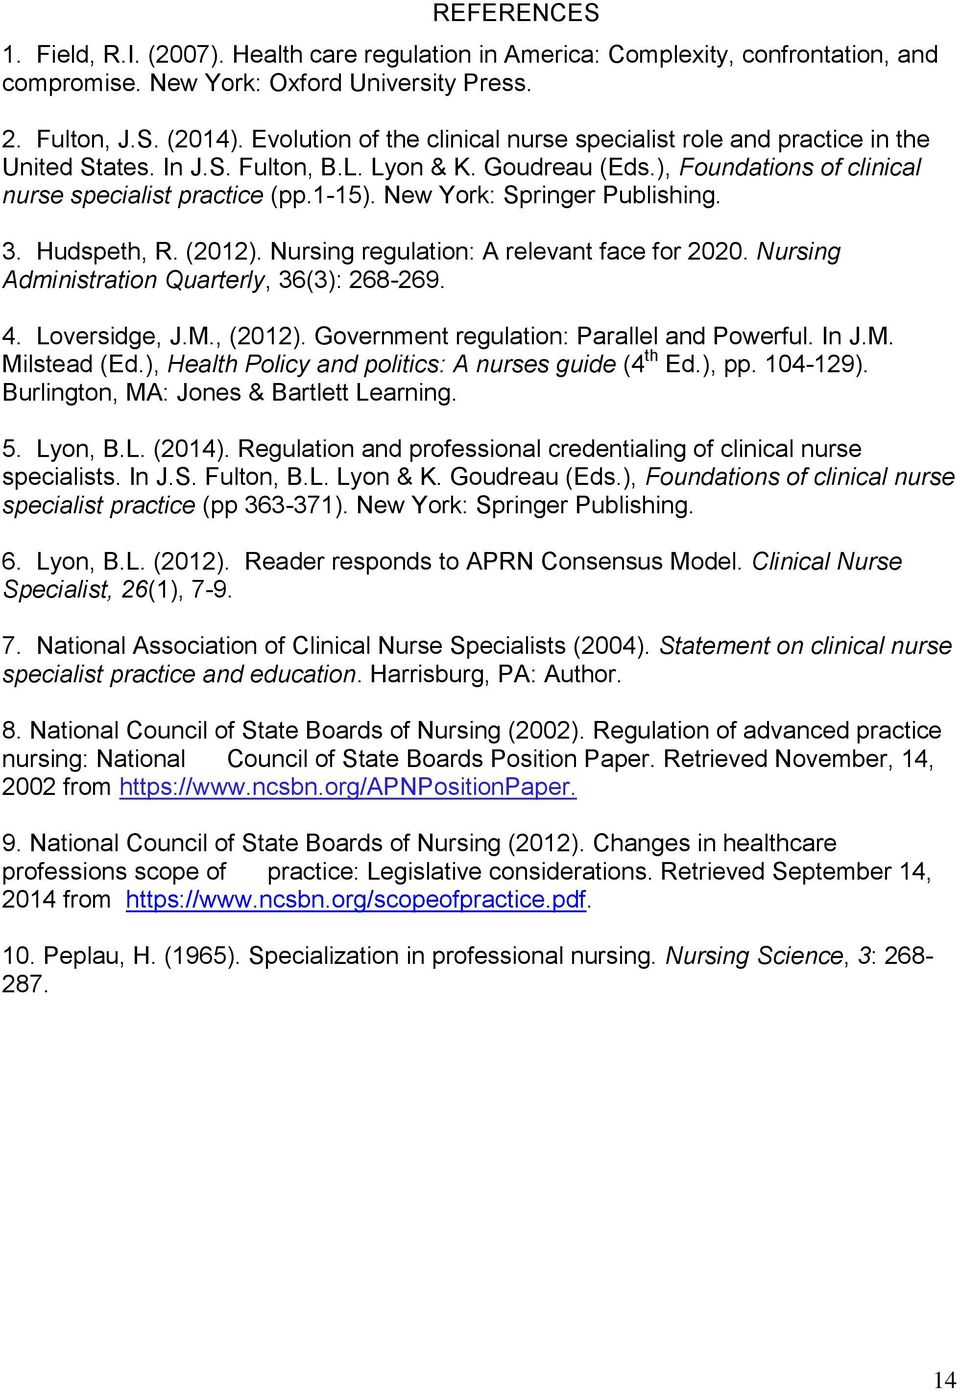 New York: Springer Publishing. 3. Hudspeth, R. (2012). Nursing regulation: A relevant face for 2020. Nursing Administration Quarterly, 36(3): 268-269. 4. Loversidge, J.M., (2012).